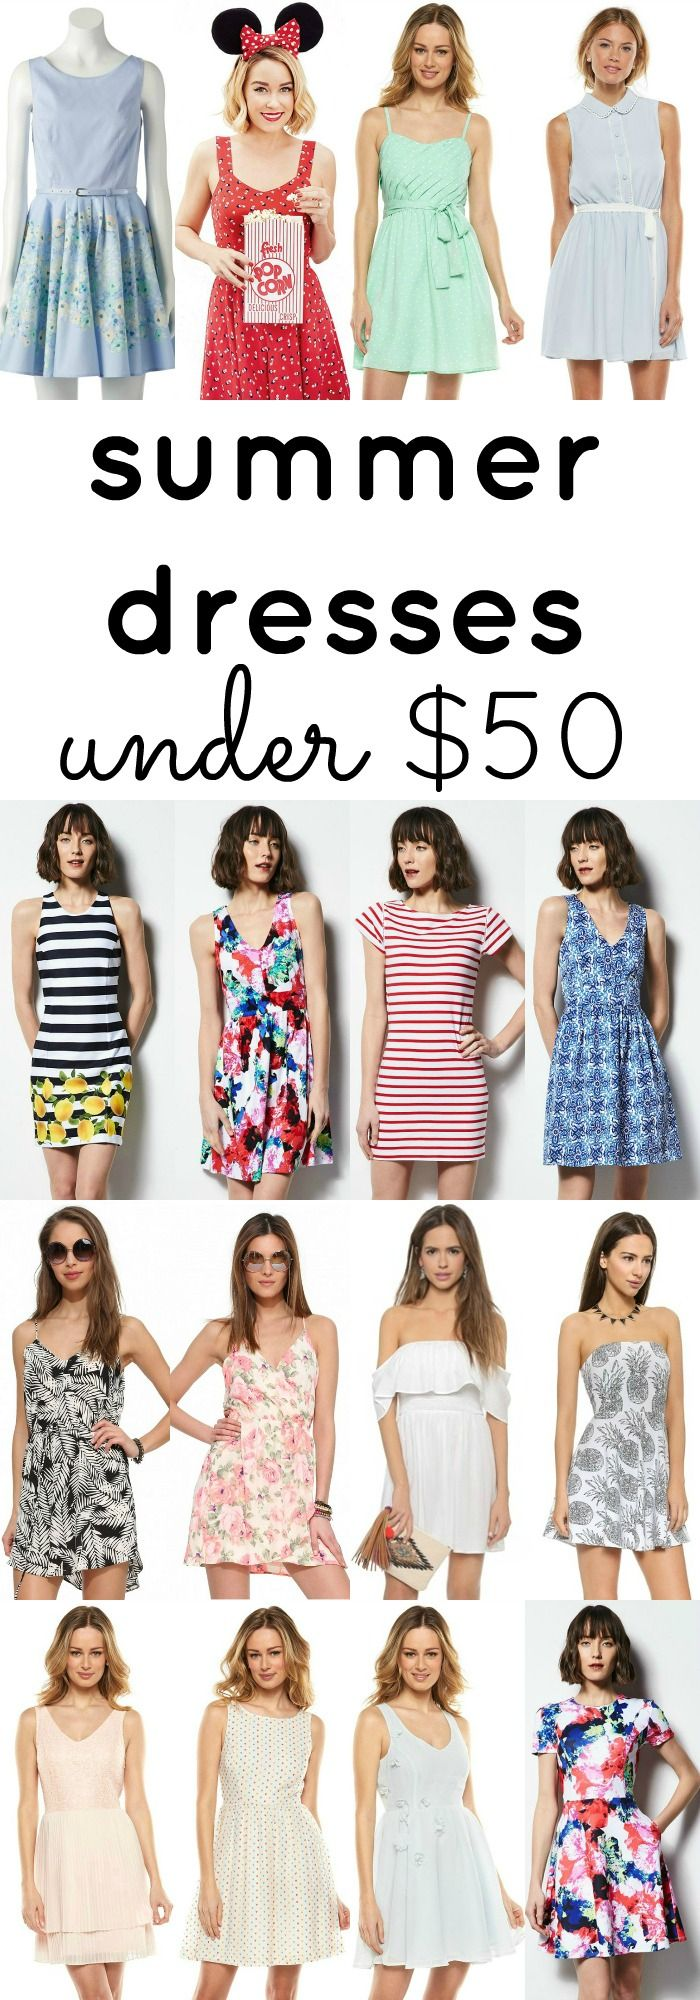 This post features over 60 dresses that are perfect for summer, and they're ALL under $50!